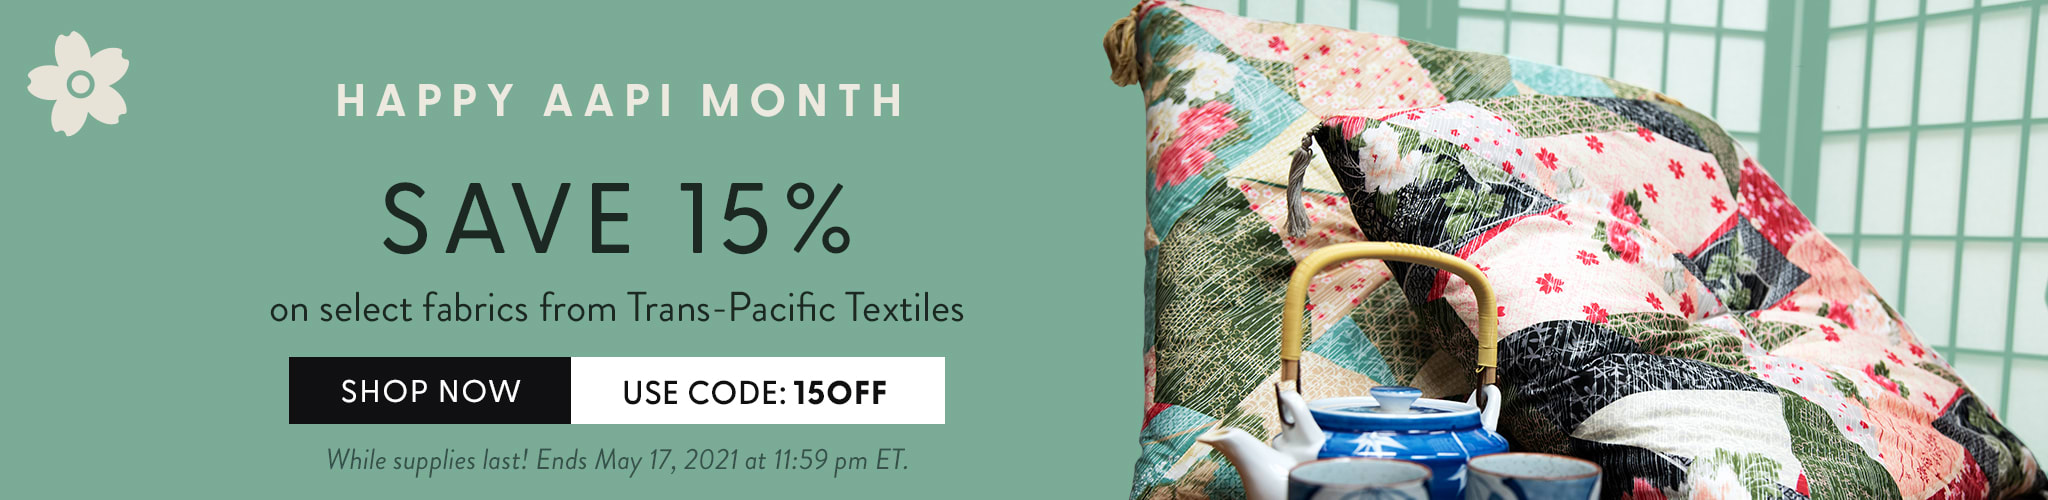 Happy AAPI Month Save 15% on select fabrics from Trans-Pacific Textiles Use Code 15Off